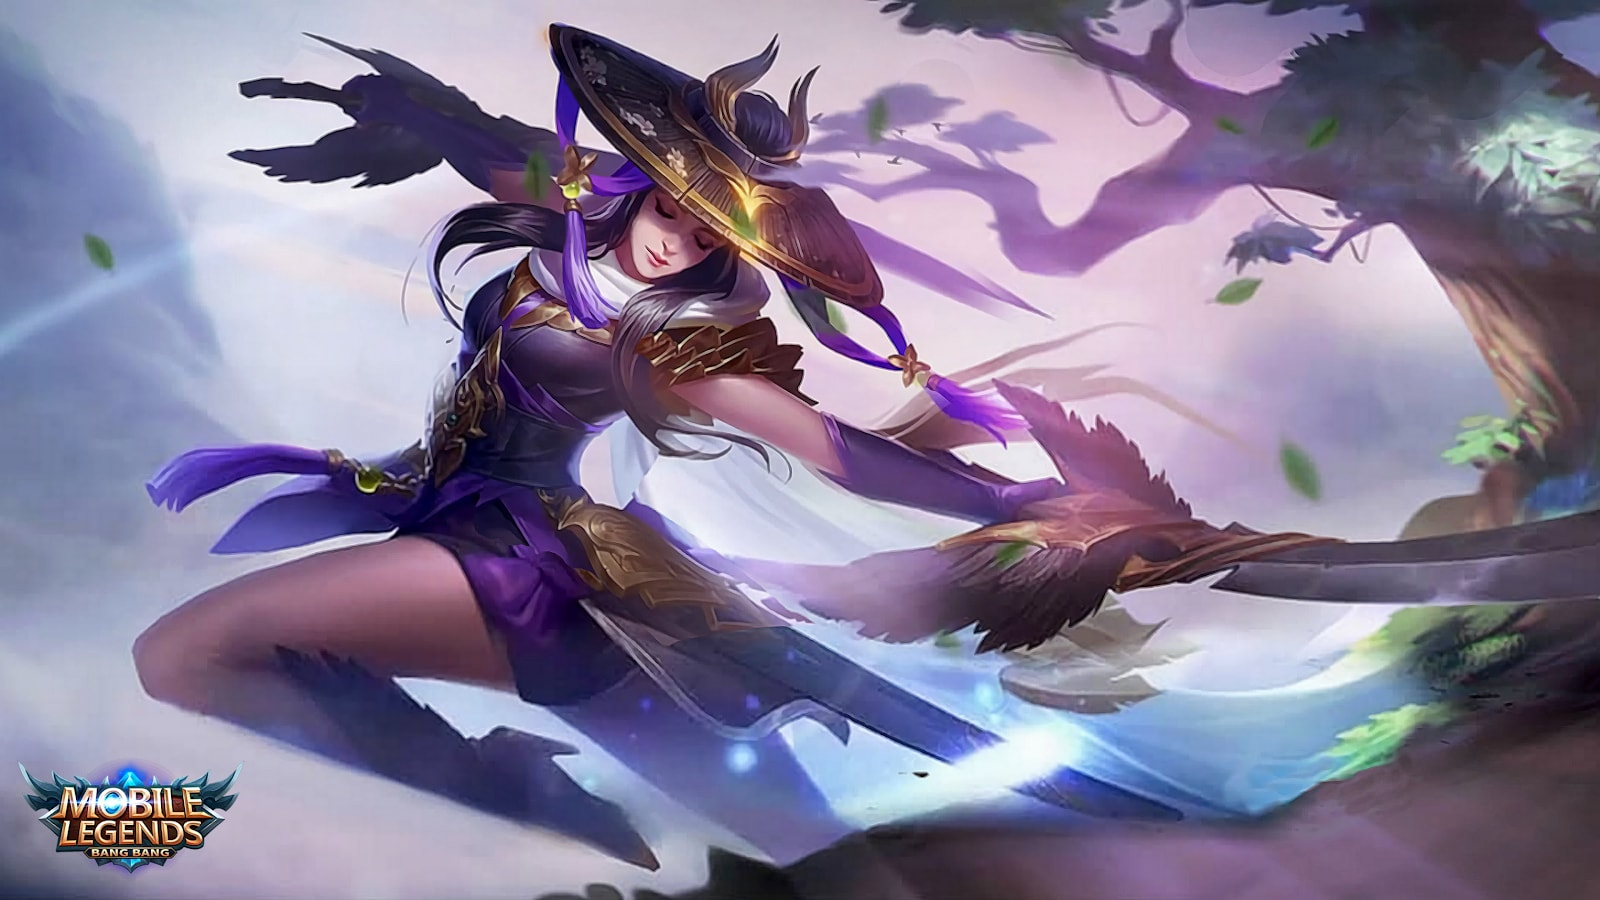 Wallpaper Fanny Skylark Skin Mobile Legends Full HD for PC